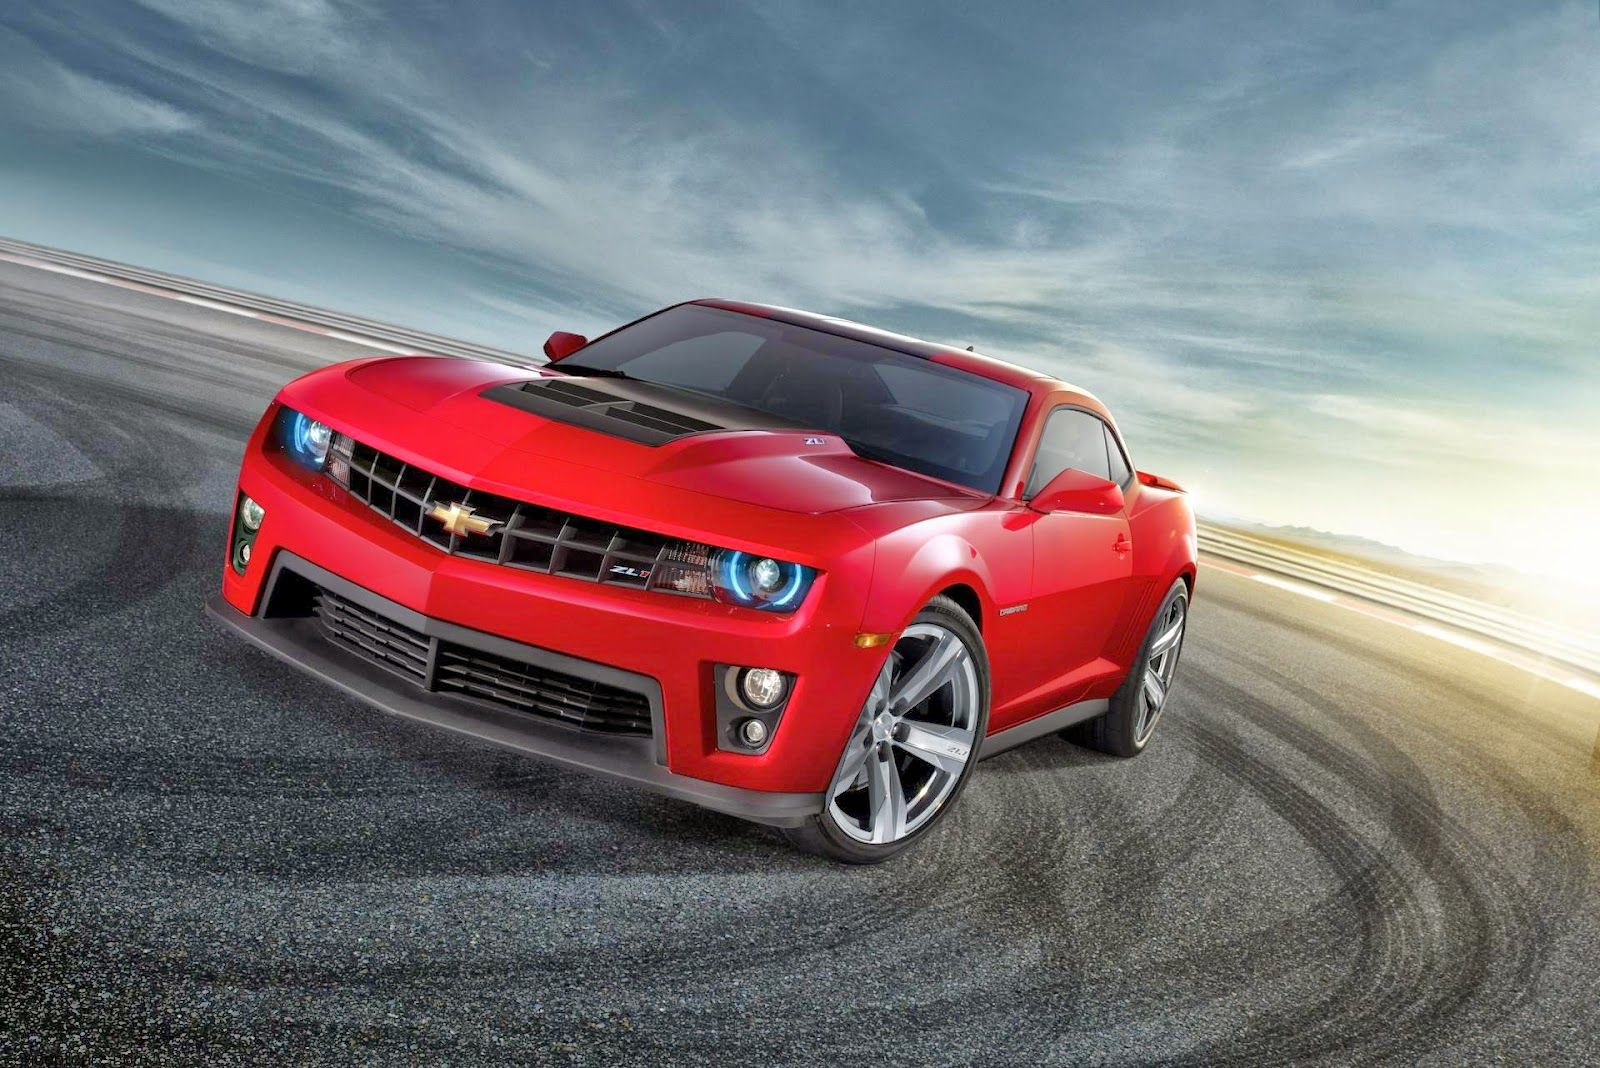 Automotive: Automotive Advertising Agencies Focus on People Using Social  Media Vs Product or Price